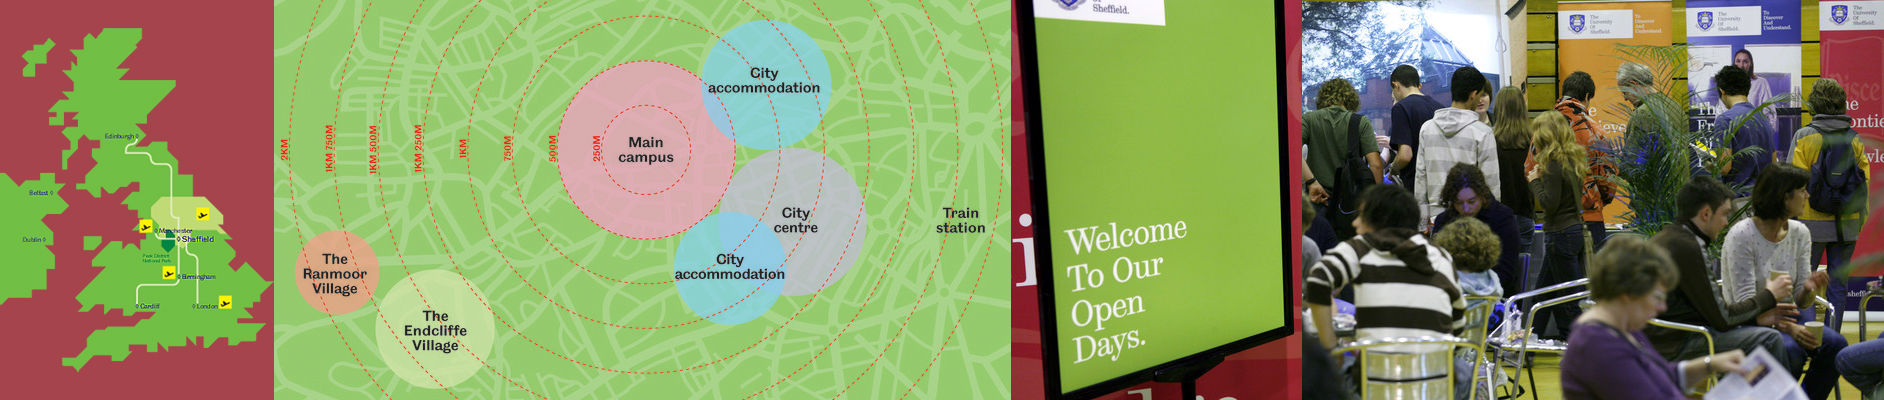 Image banner showing Sheffield university's location within the UK and visitors at an open day